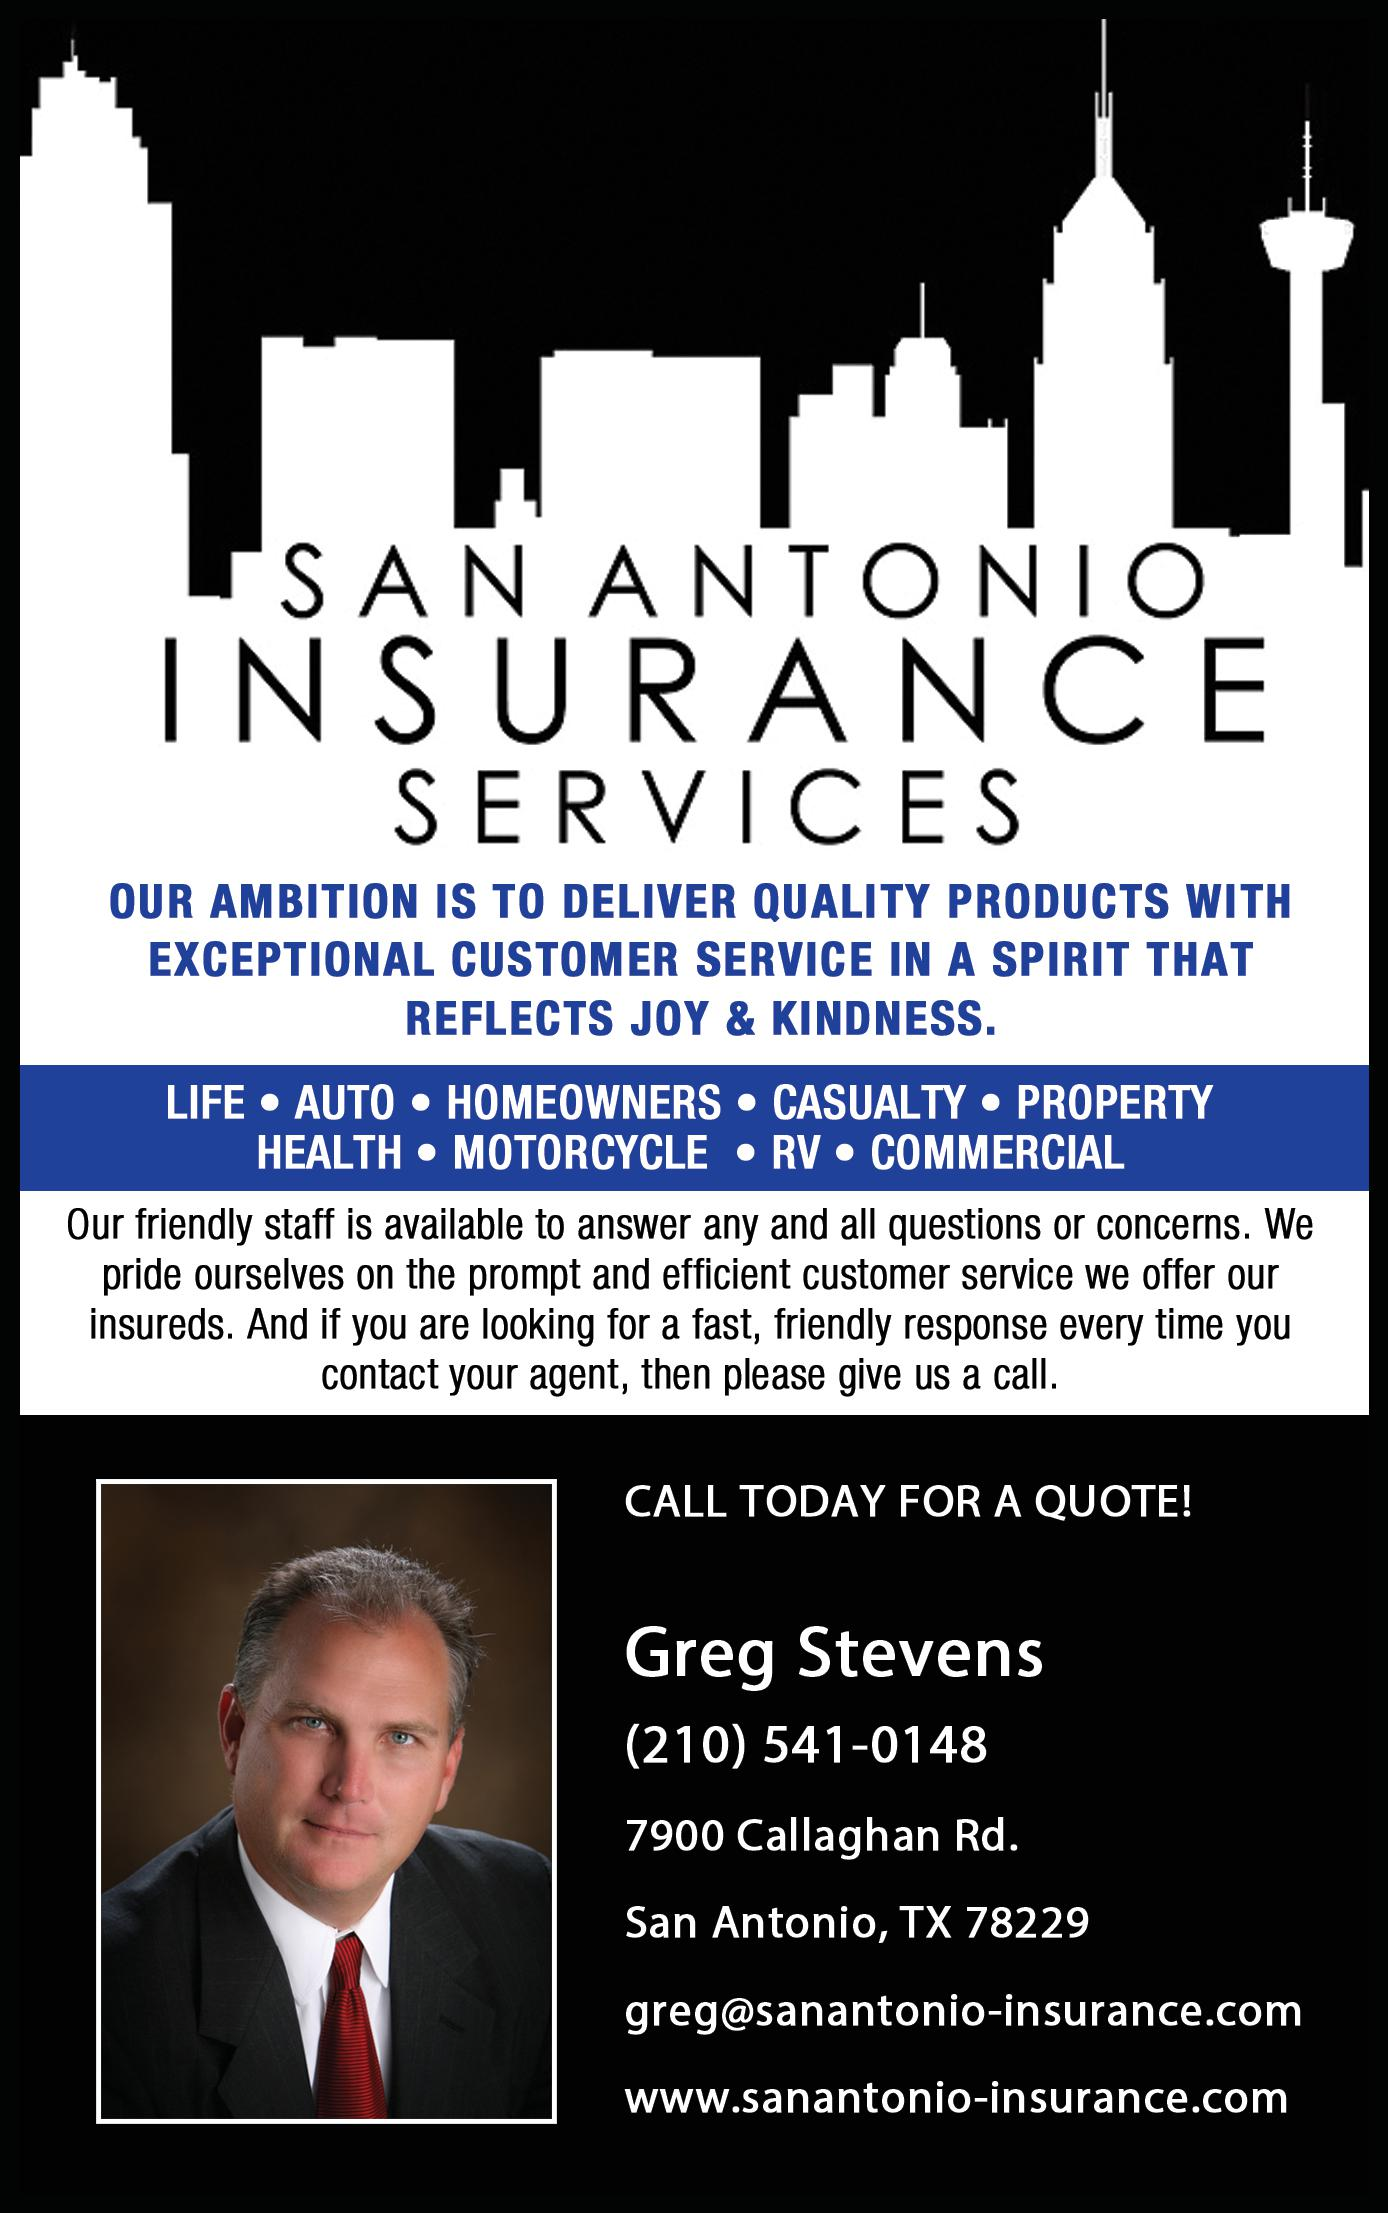 San Antonio Insurance Services, LLC